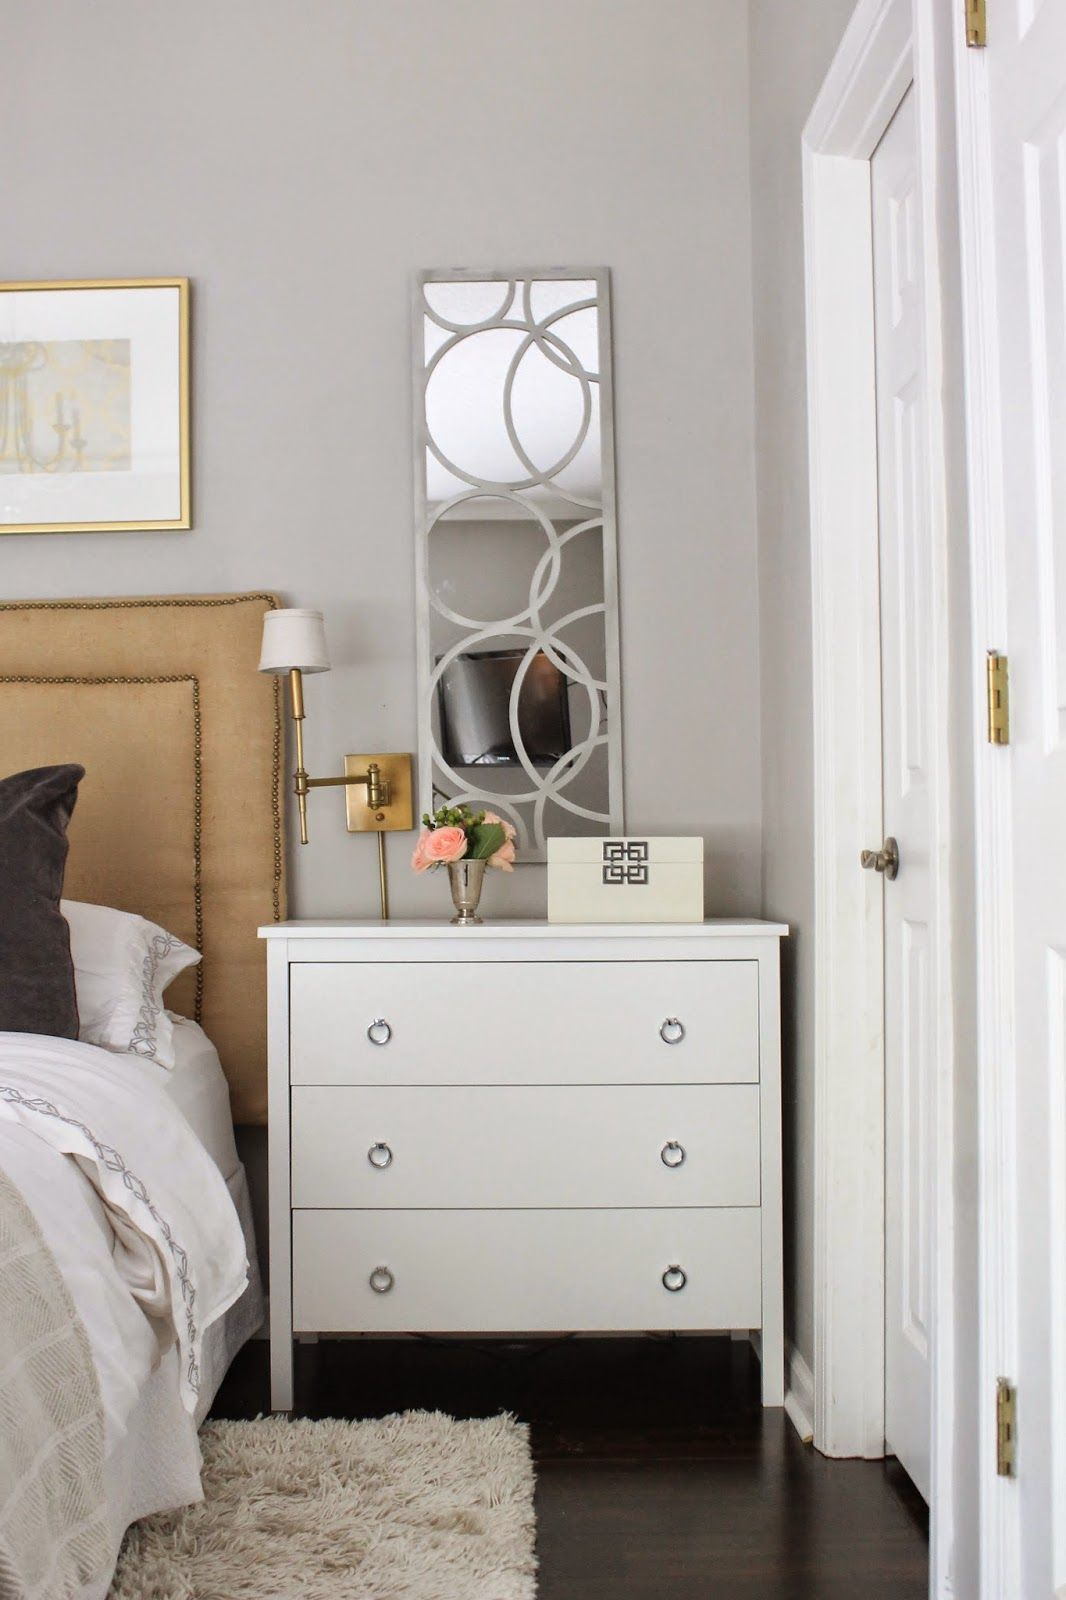 Koppang Ikea Koppang Dresser Home Bedroom Pinterest Master Bedroom